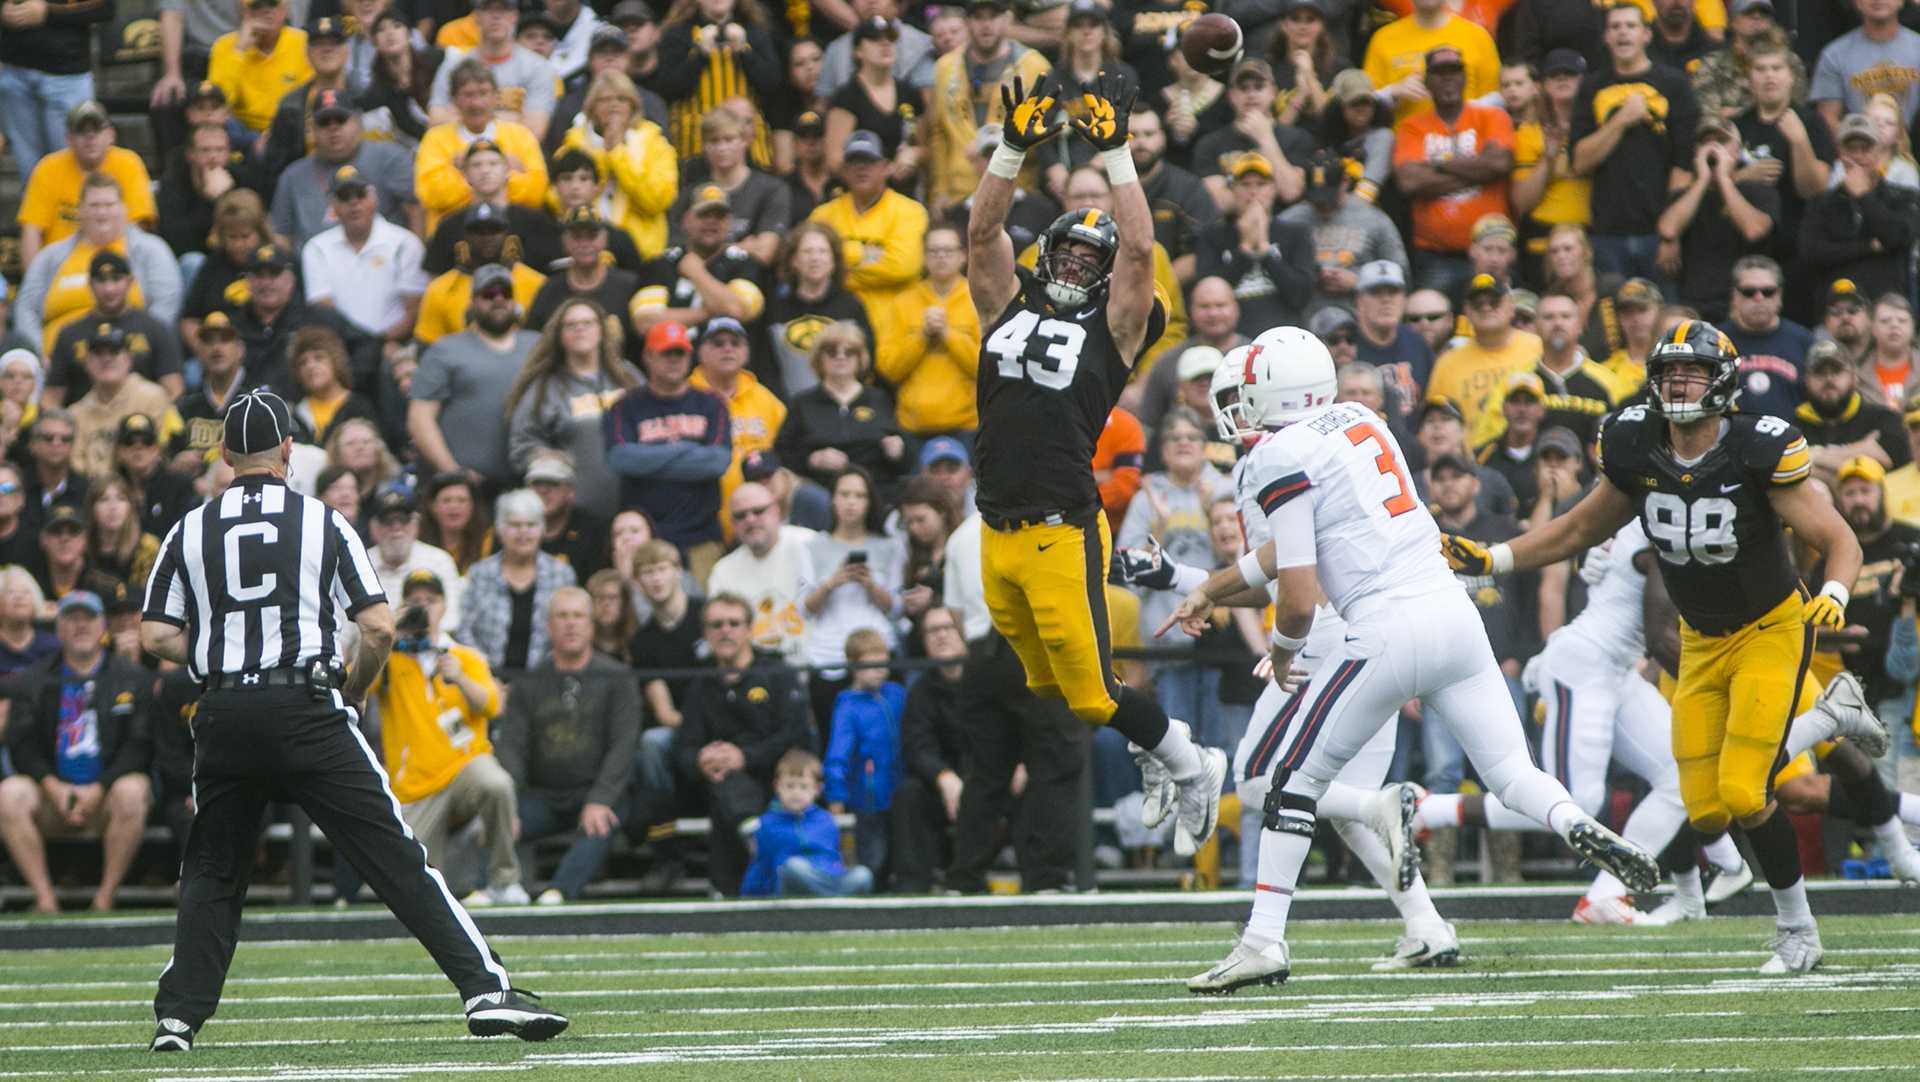 Iowa linebacker Josey Jewell attempts to block a pass during an NCAA football game between Iowa and Illinois in Kinnick Stadium on Saturday, Oct. 7, 2017.  The Hawkeyes defeated the Fighting Illini, 45-16. (Joseph Cress/The Daily Iowan)